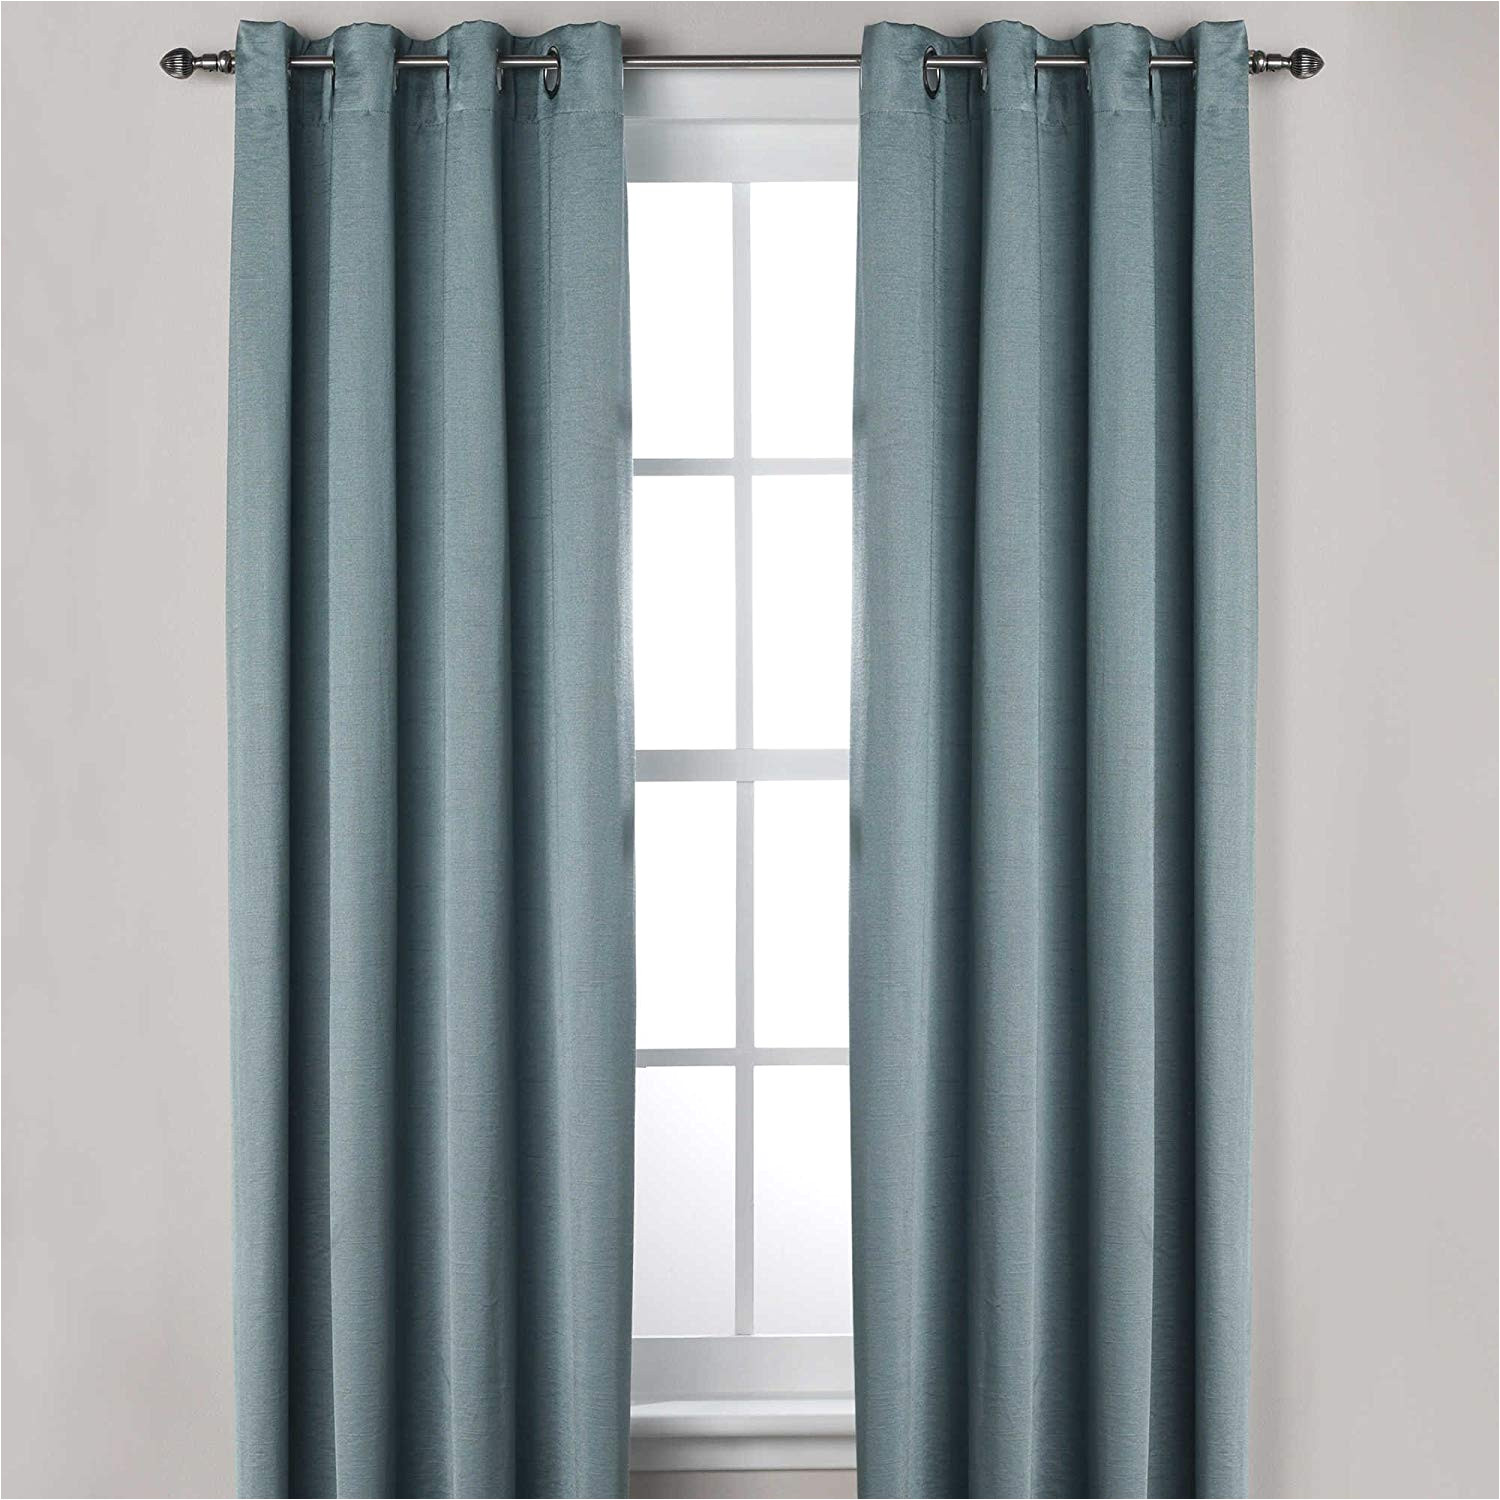 Bed Bath and Beyond Curtain Holdbacks Amazon Com Bed Bath Beyond ashton 108 L 1 Room Darkening